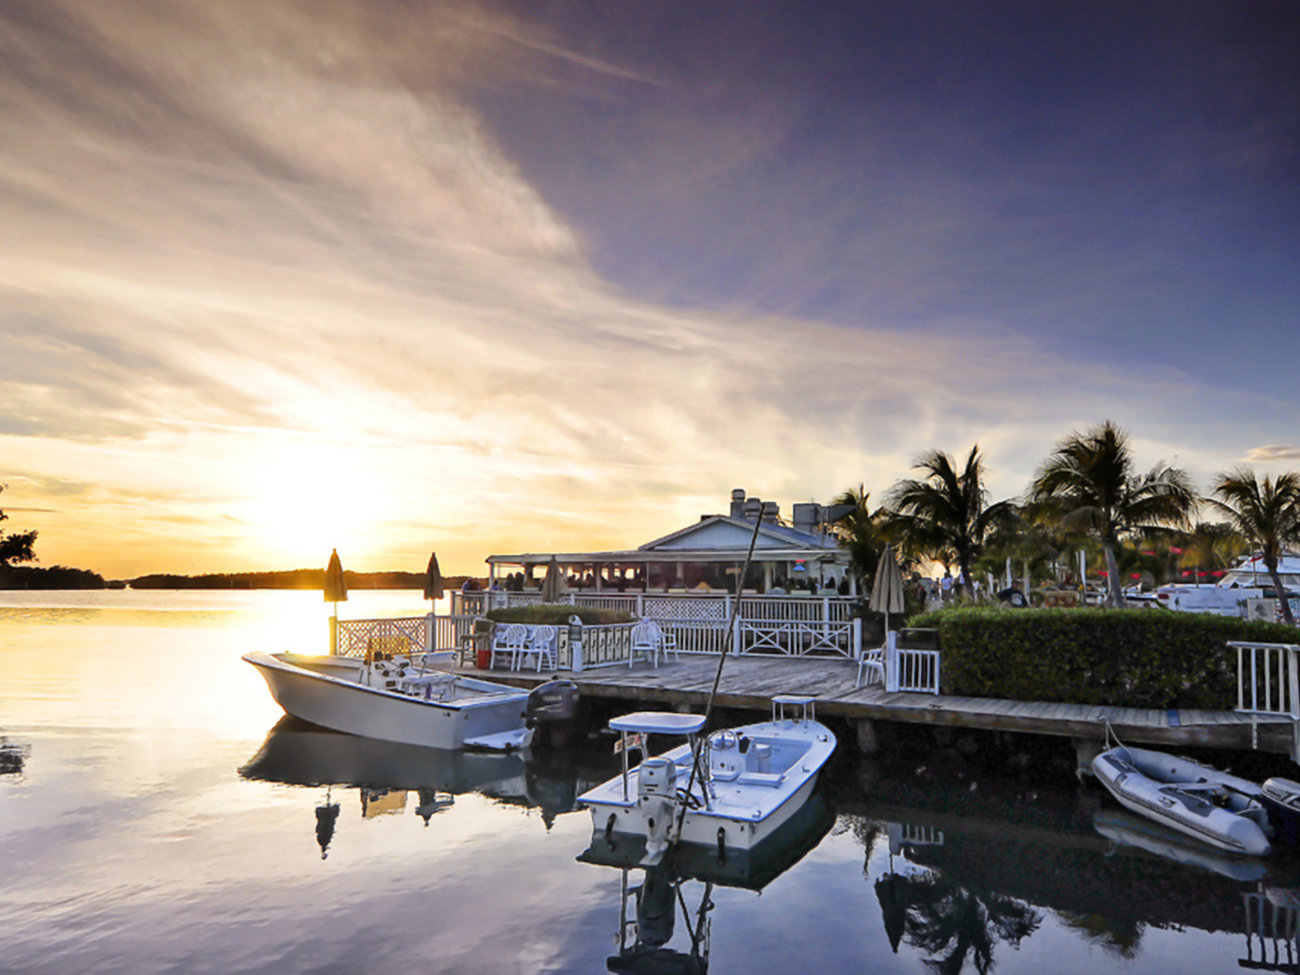 Lorelei Restaurant & Cabana Bar Restaurant in Florida Keys